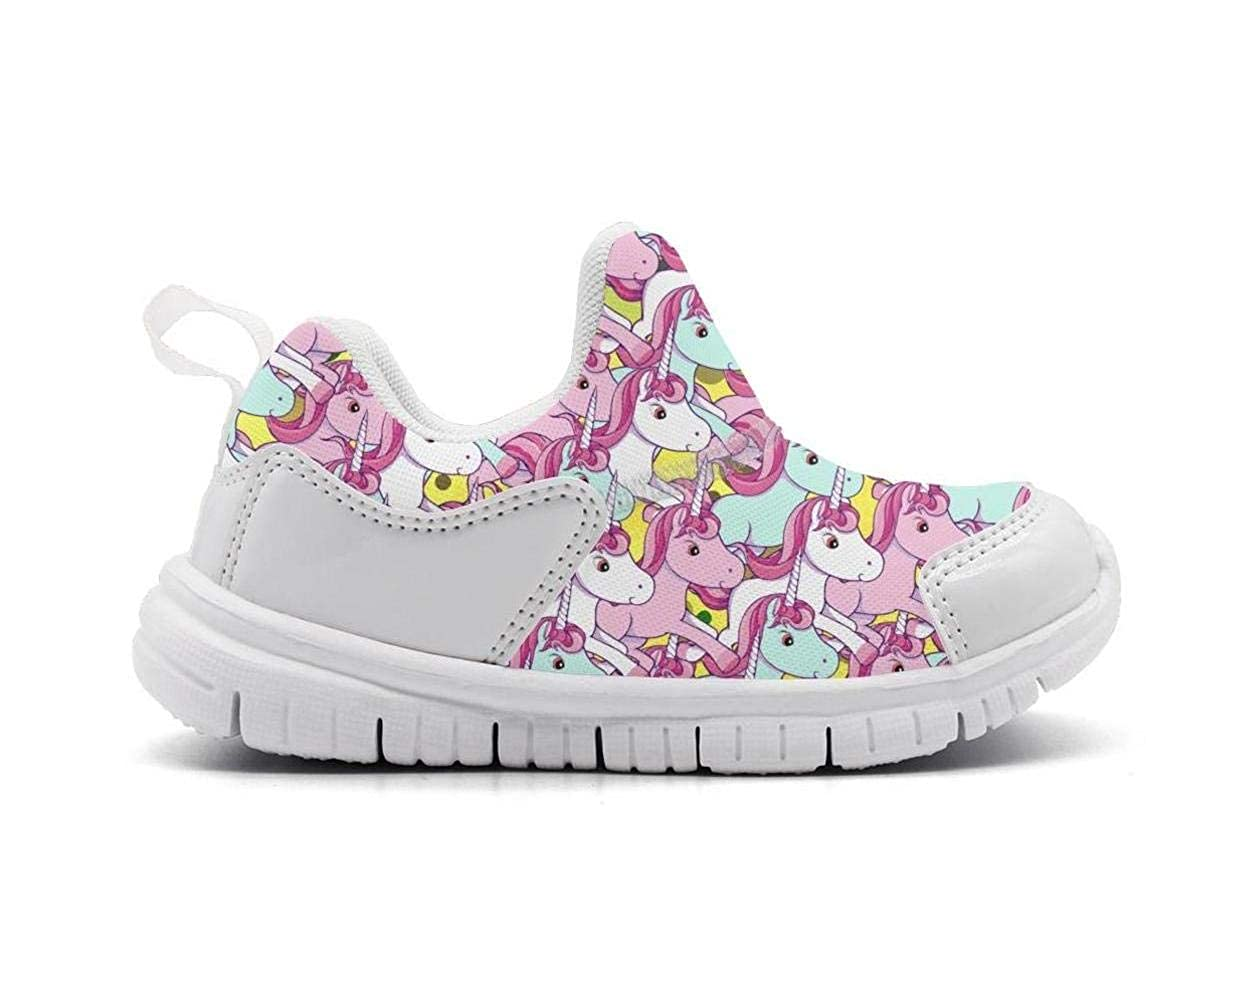 Kinglong Pink Unicorn Horse Lovely Kids Sneakers Boys and Girls Cute Casual Lightweight Running Shoes